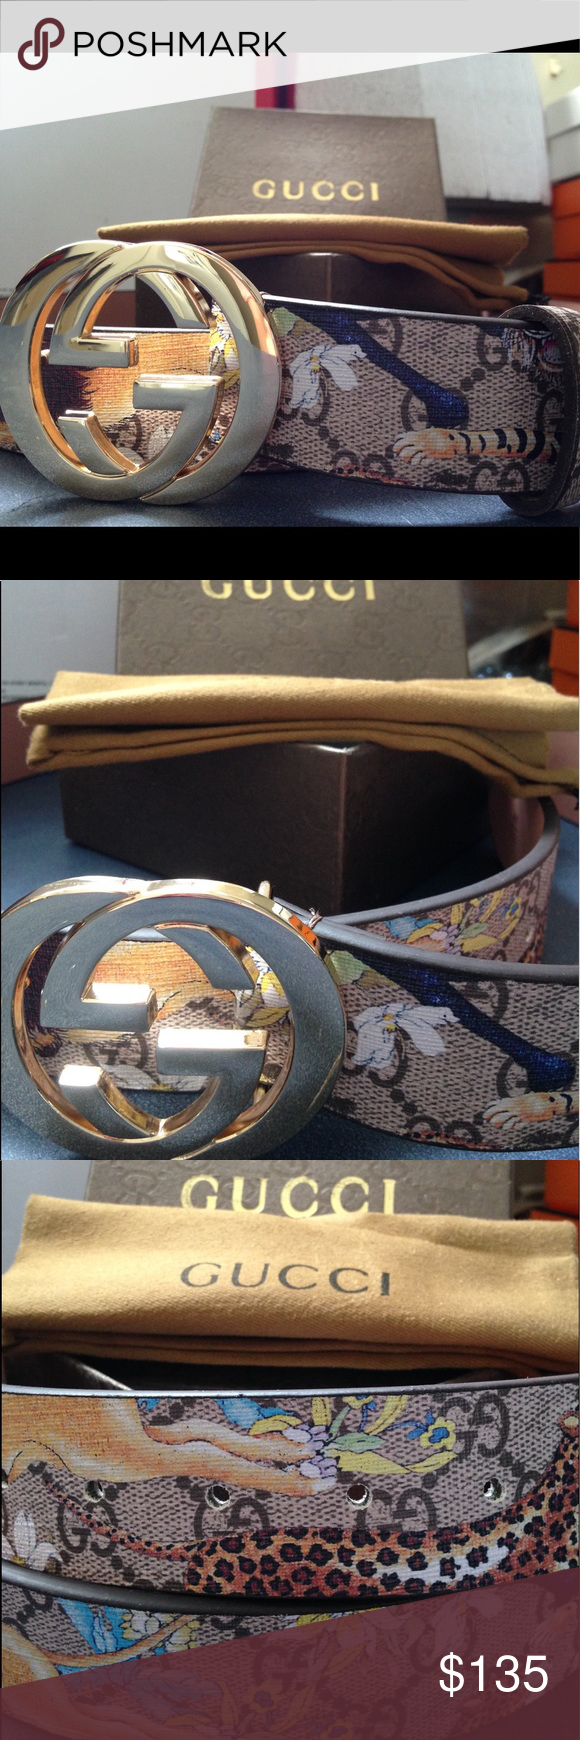 50bd9747ecd Men s Gucci belt New men s tiger and lion Desginer Gucci belt with gold  buckle ! Never worn comes with original Gucci dust bag and box men s size  30-34 this ...